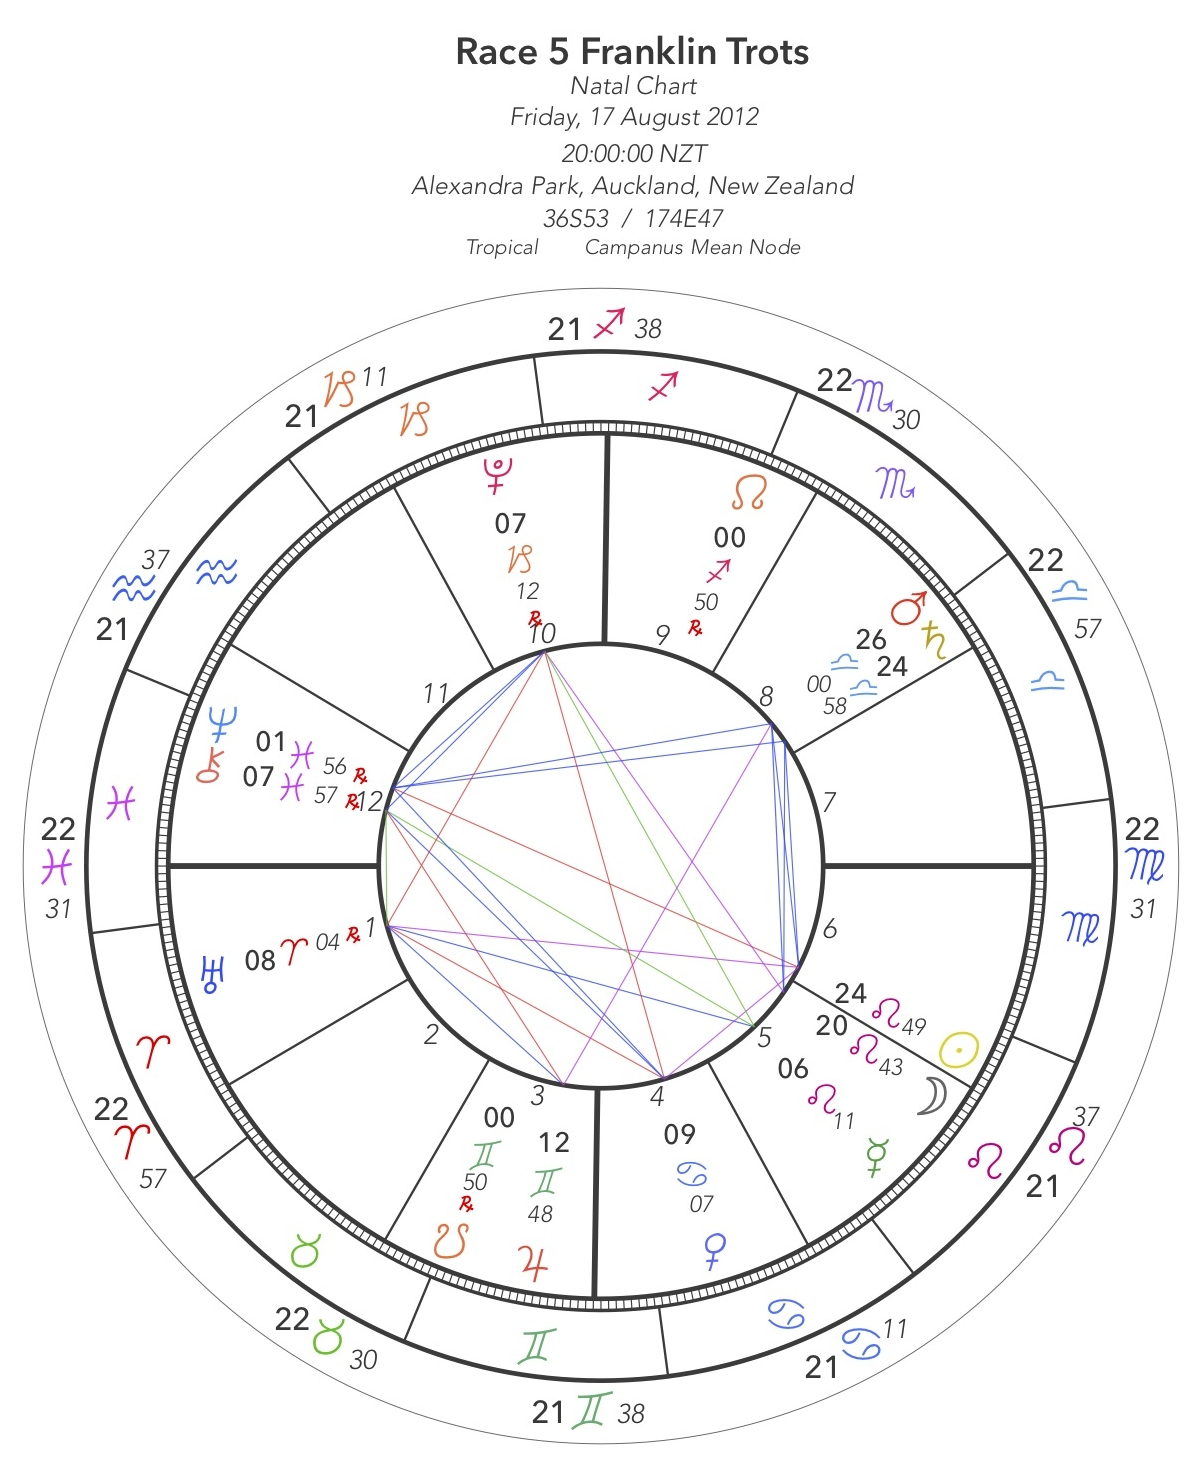 The star map for the beginning of Race 5 at the Franklin Trots in Auckland, 8pm on Friday 19th August 2012